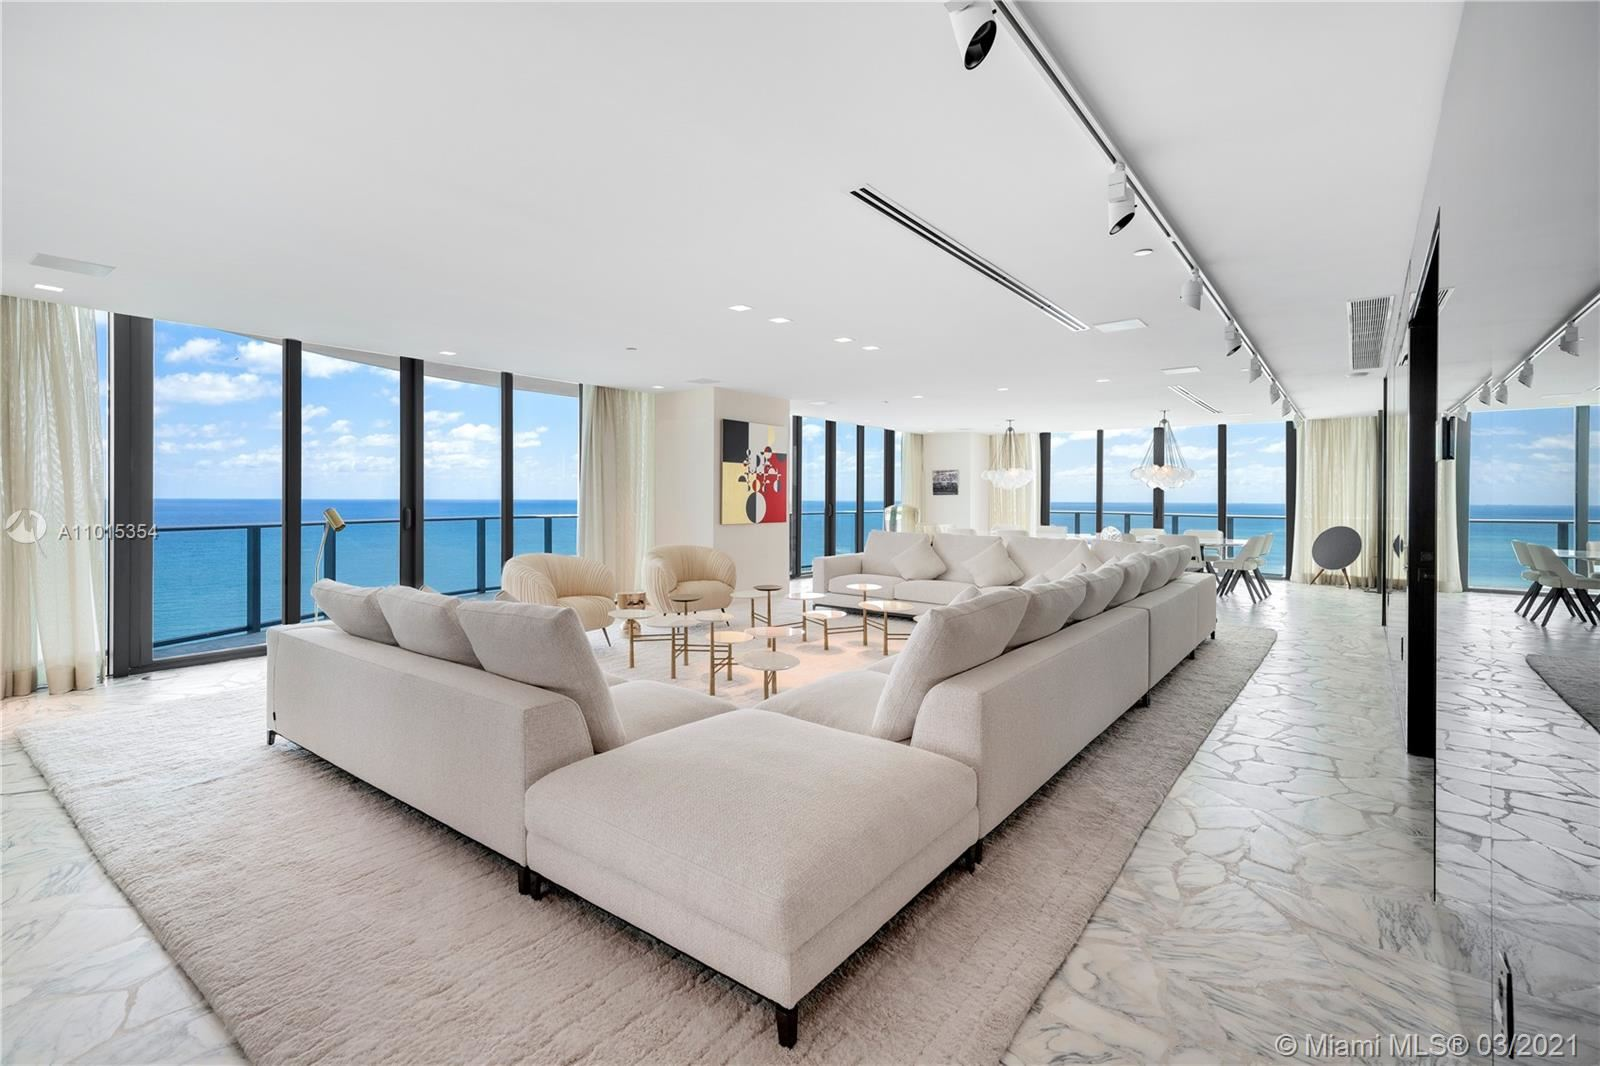 19575 Collins Ave #17, Sunny Isles, FL 33160 - #: A11015354